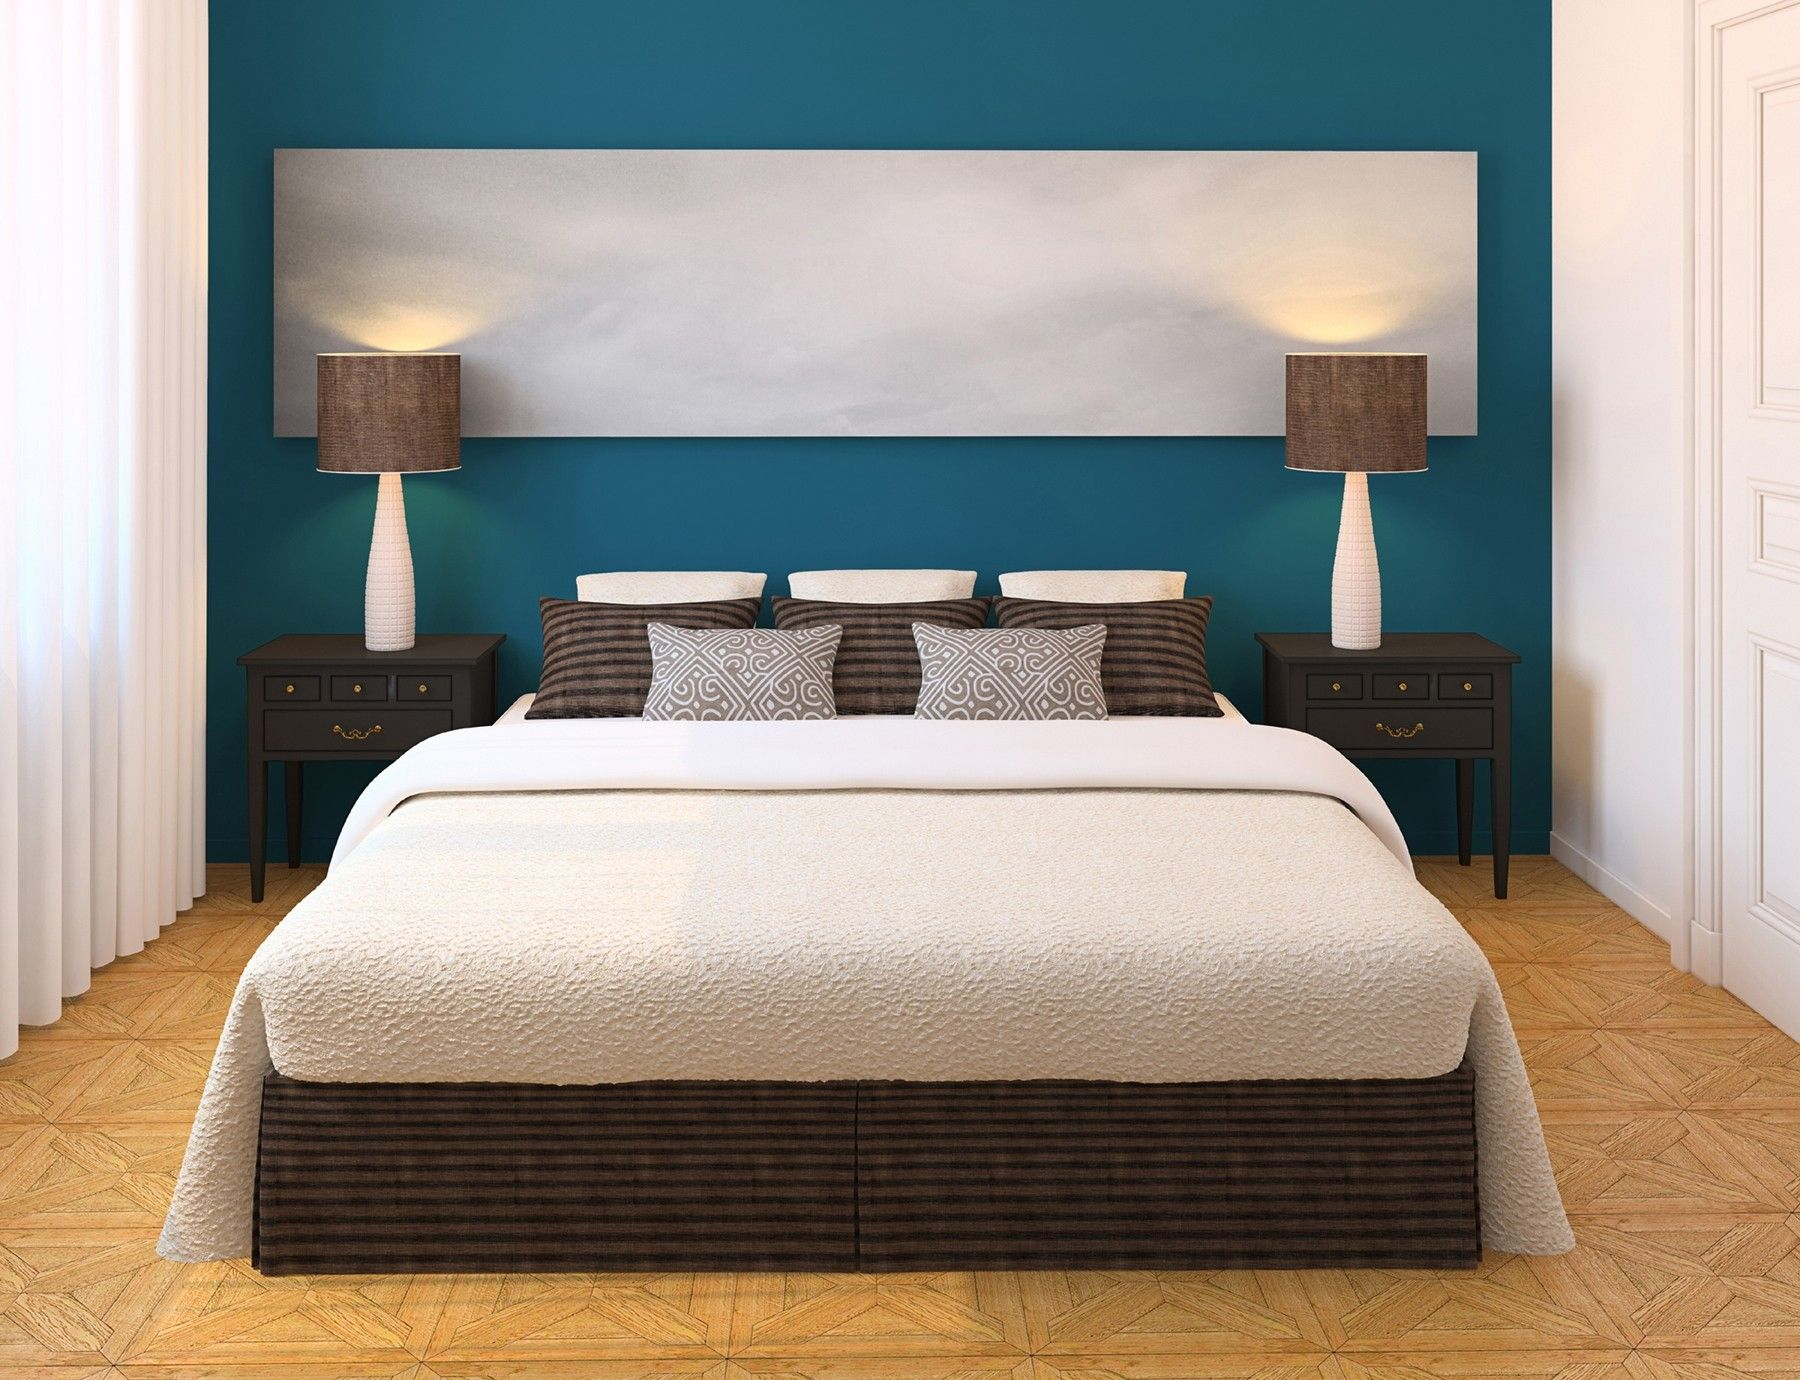 Bedroom: Stunning Black And White Master Bedroom Paint Color Schemes With  Small Glass Chandelier For